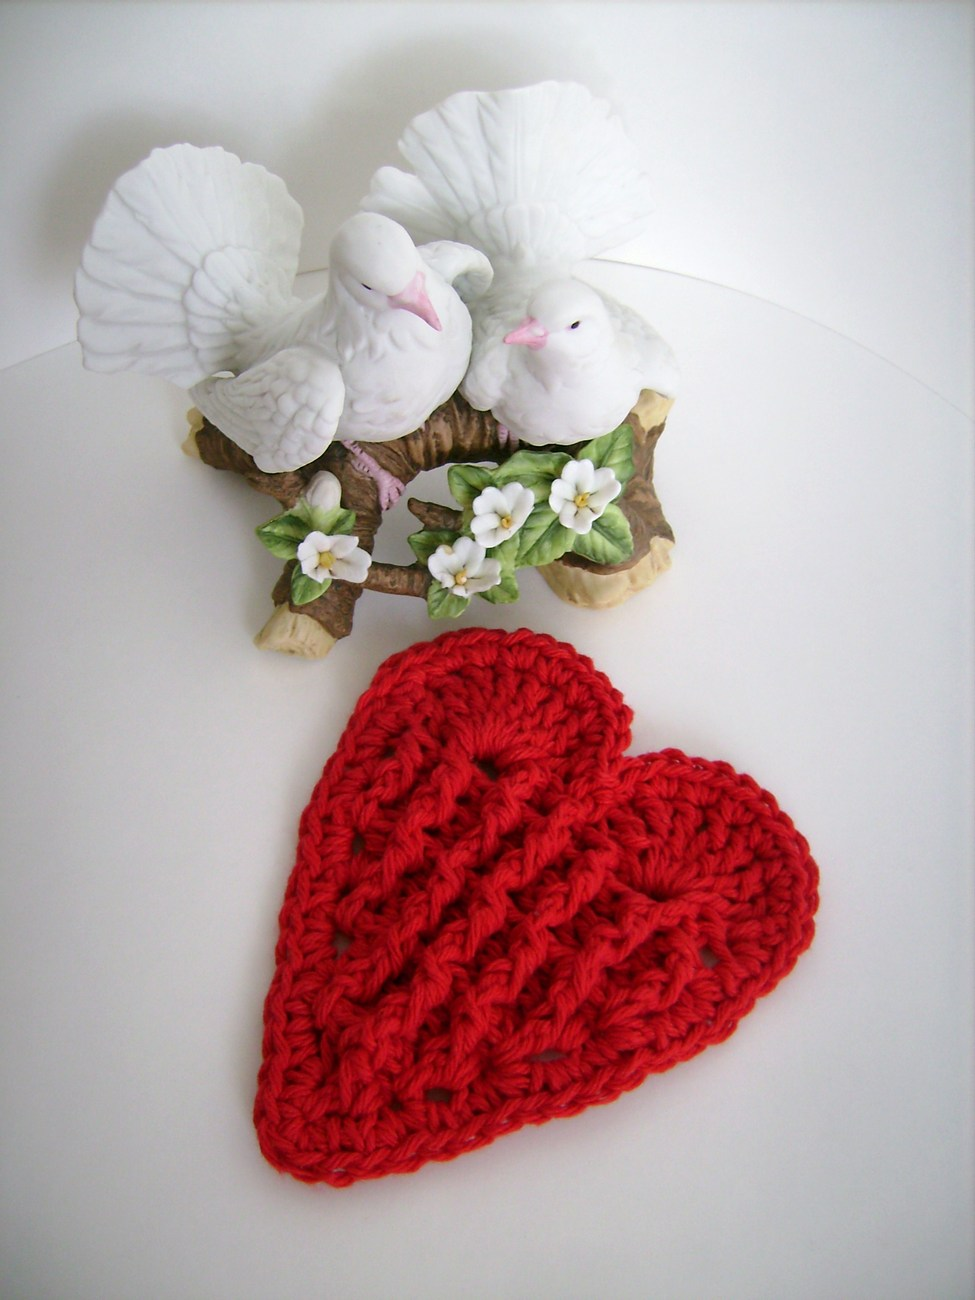 Valentine's Day Red Heart Crochet Soap Dish USA Grown Cotton